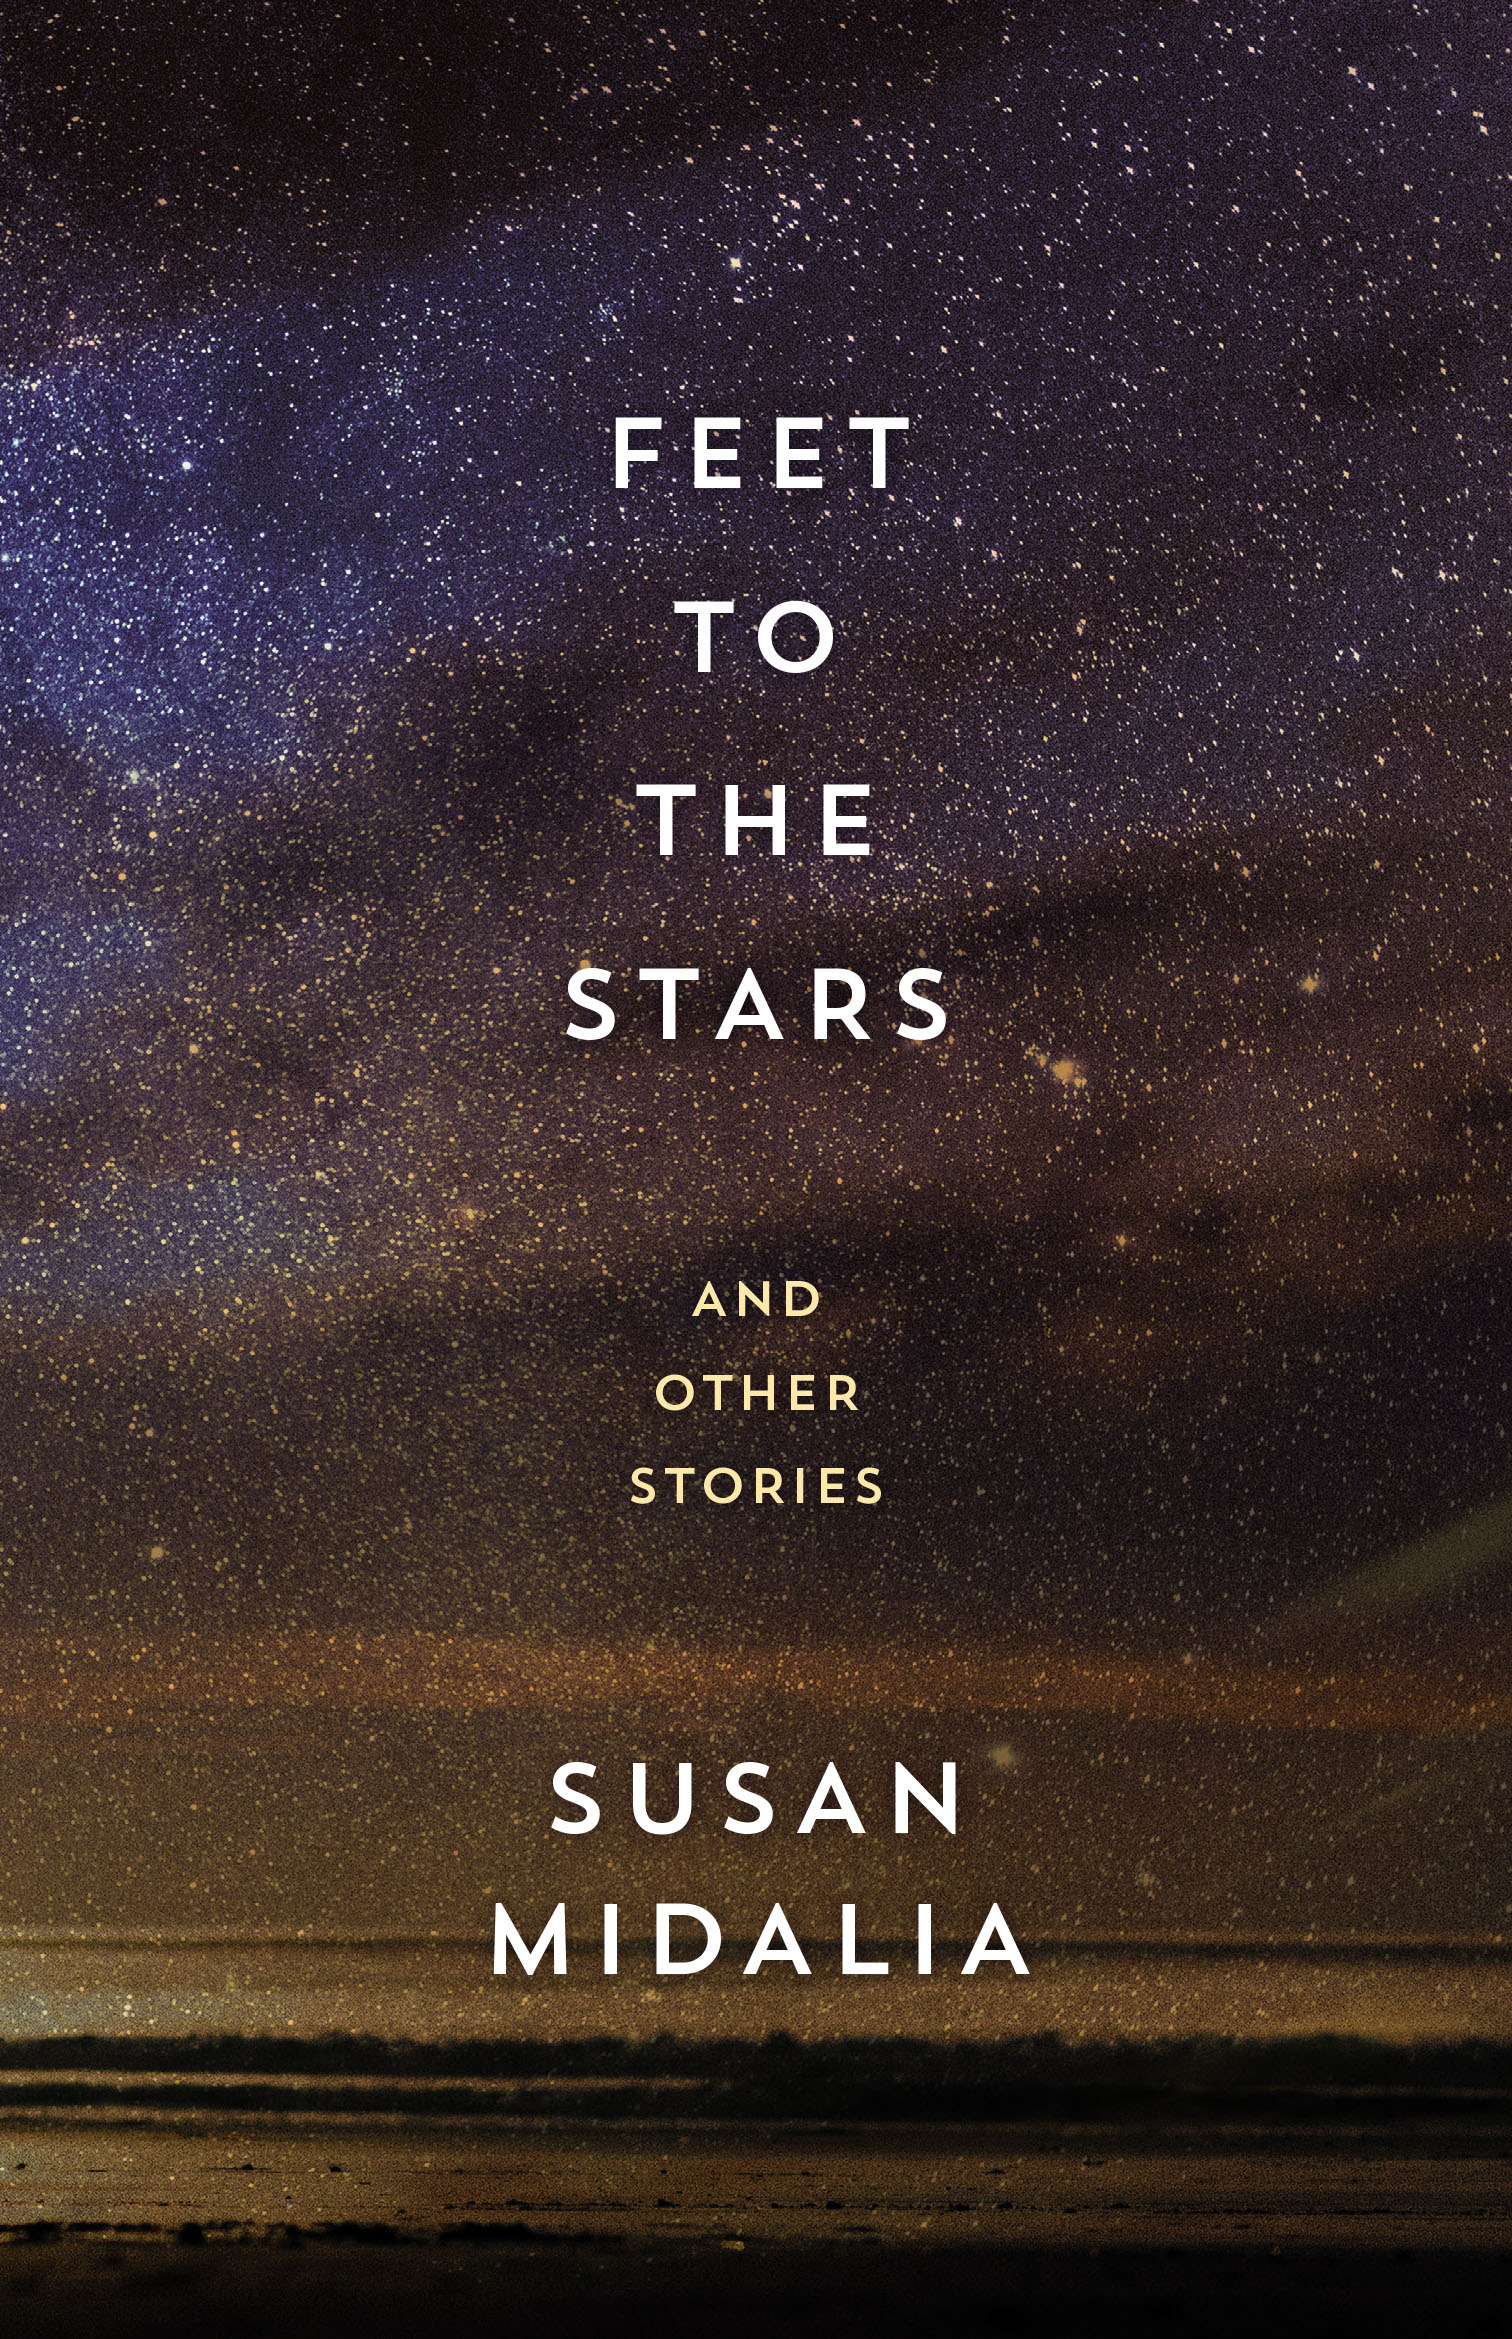 Q & A with Susan Midalia, author of Feet to the Stars